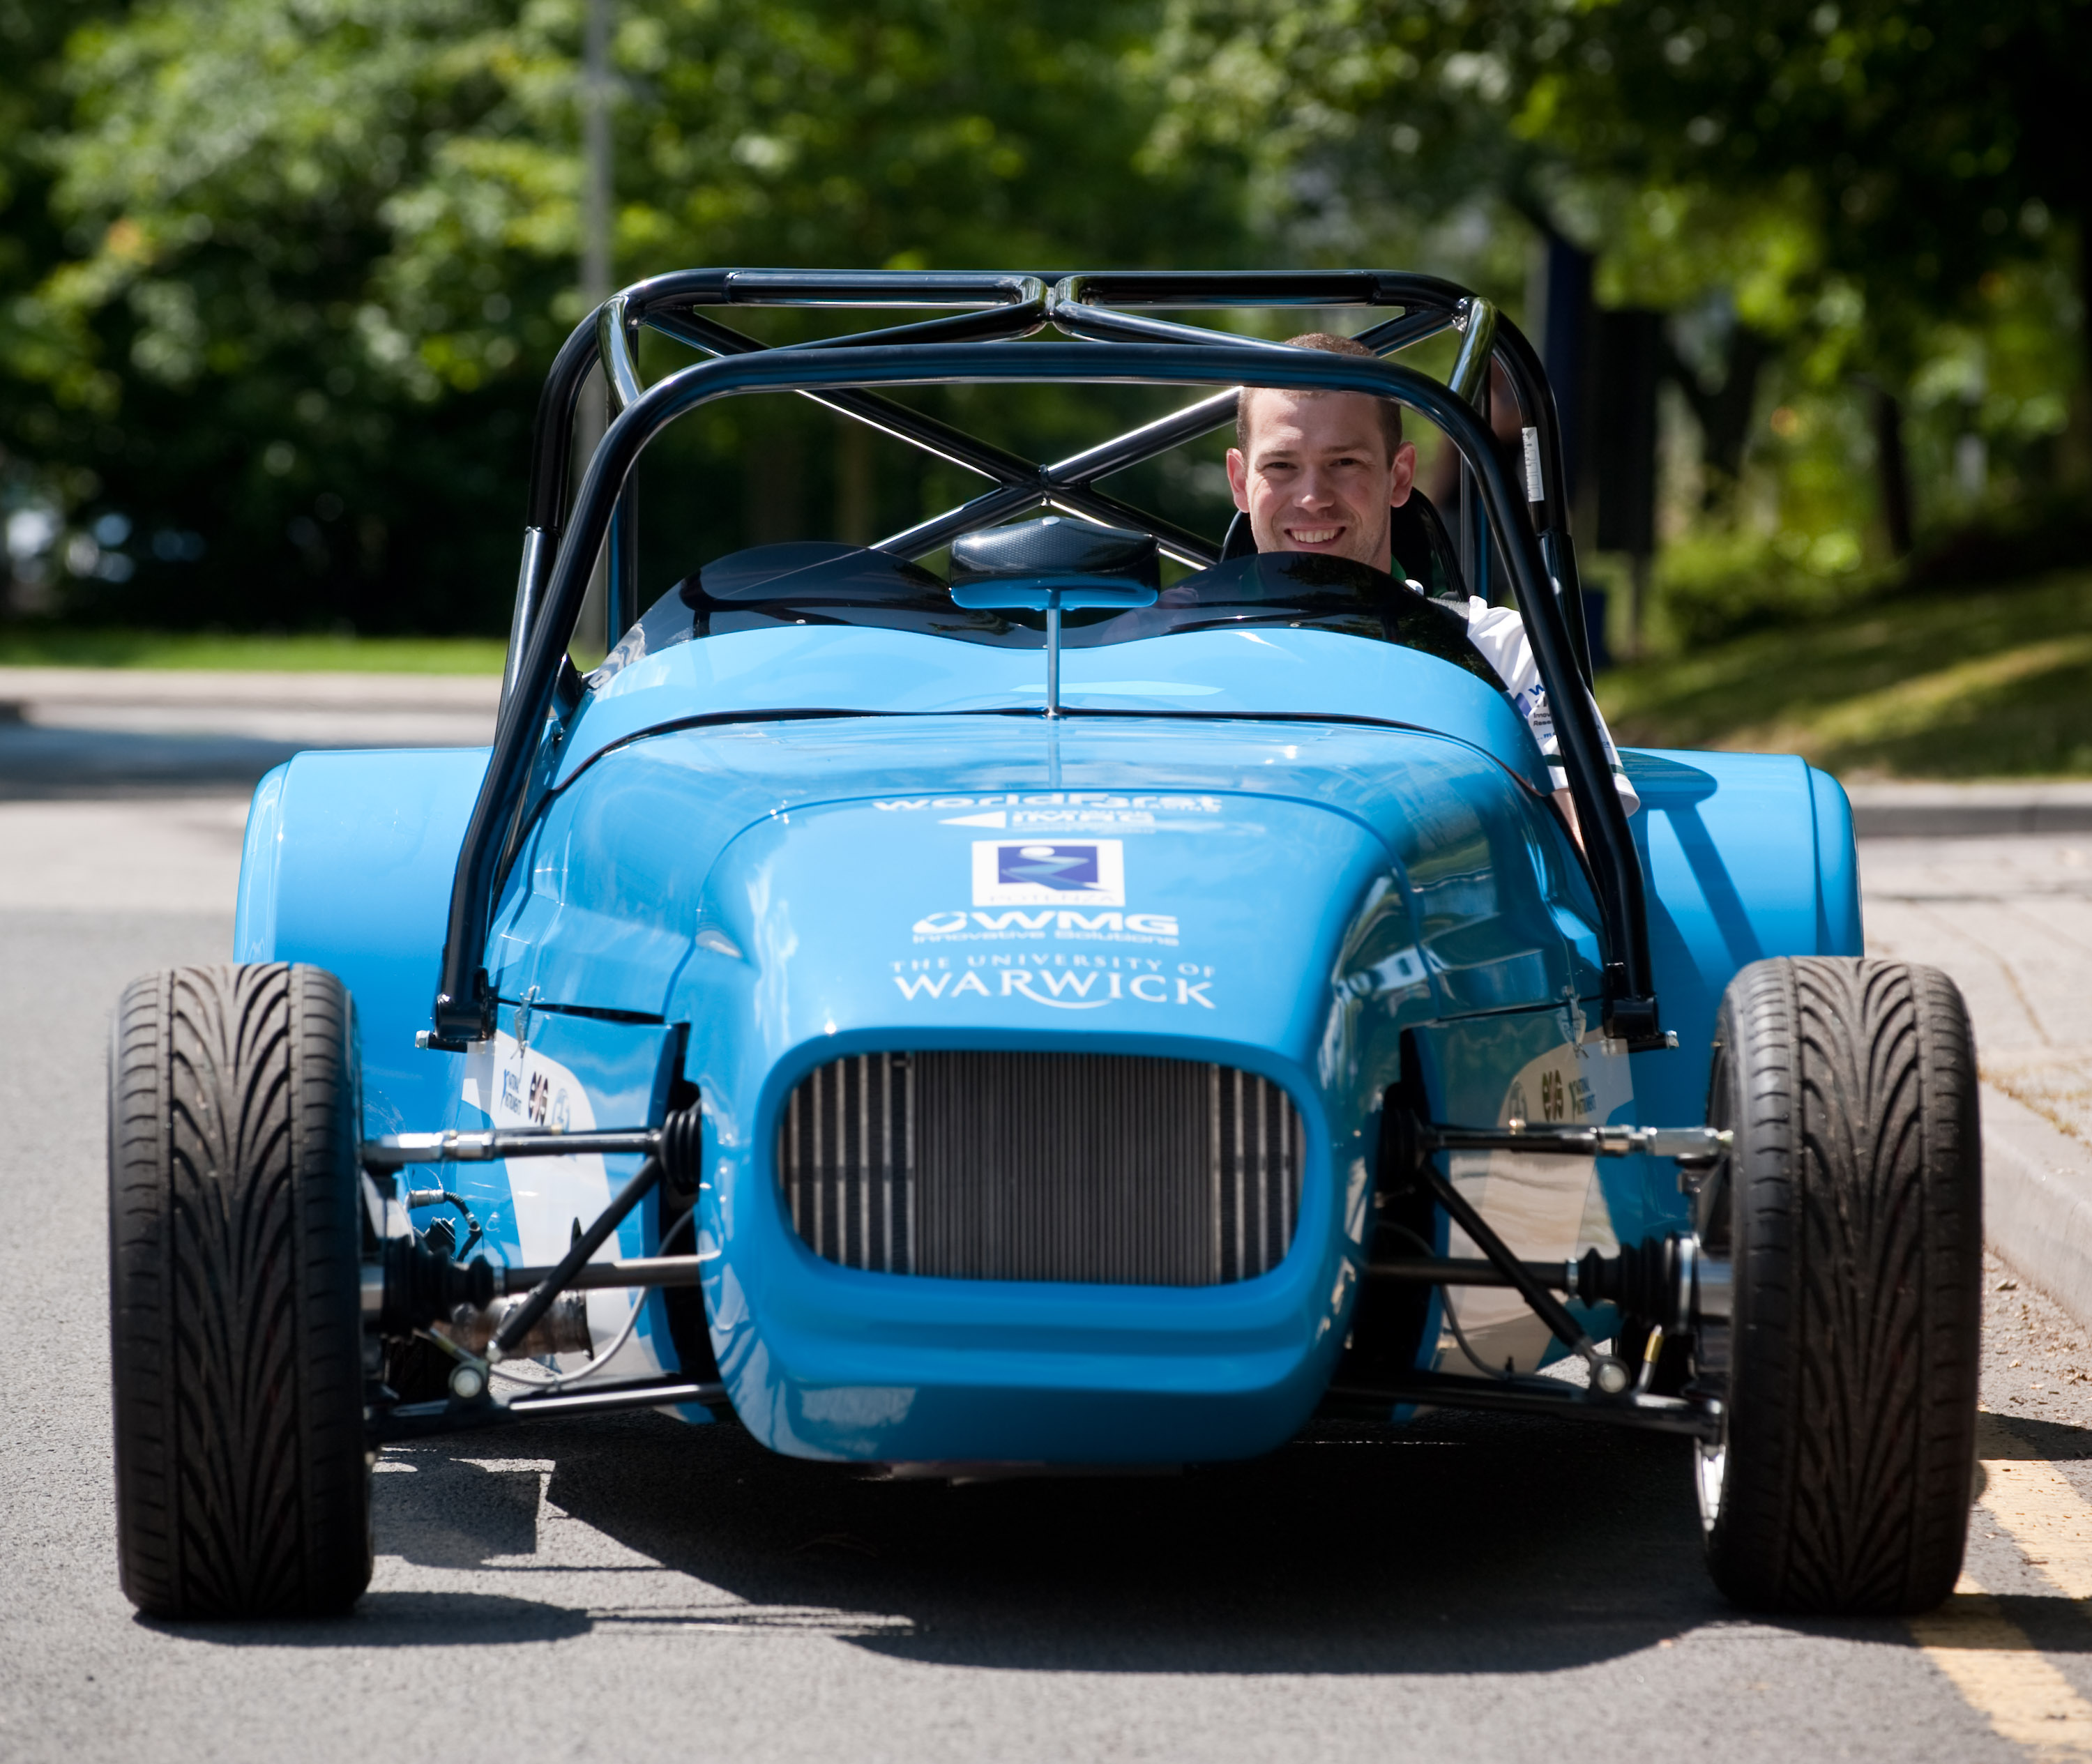 Research Engineer Stephen Lambert With The Hybrid Kit Car At University Of Warwick